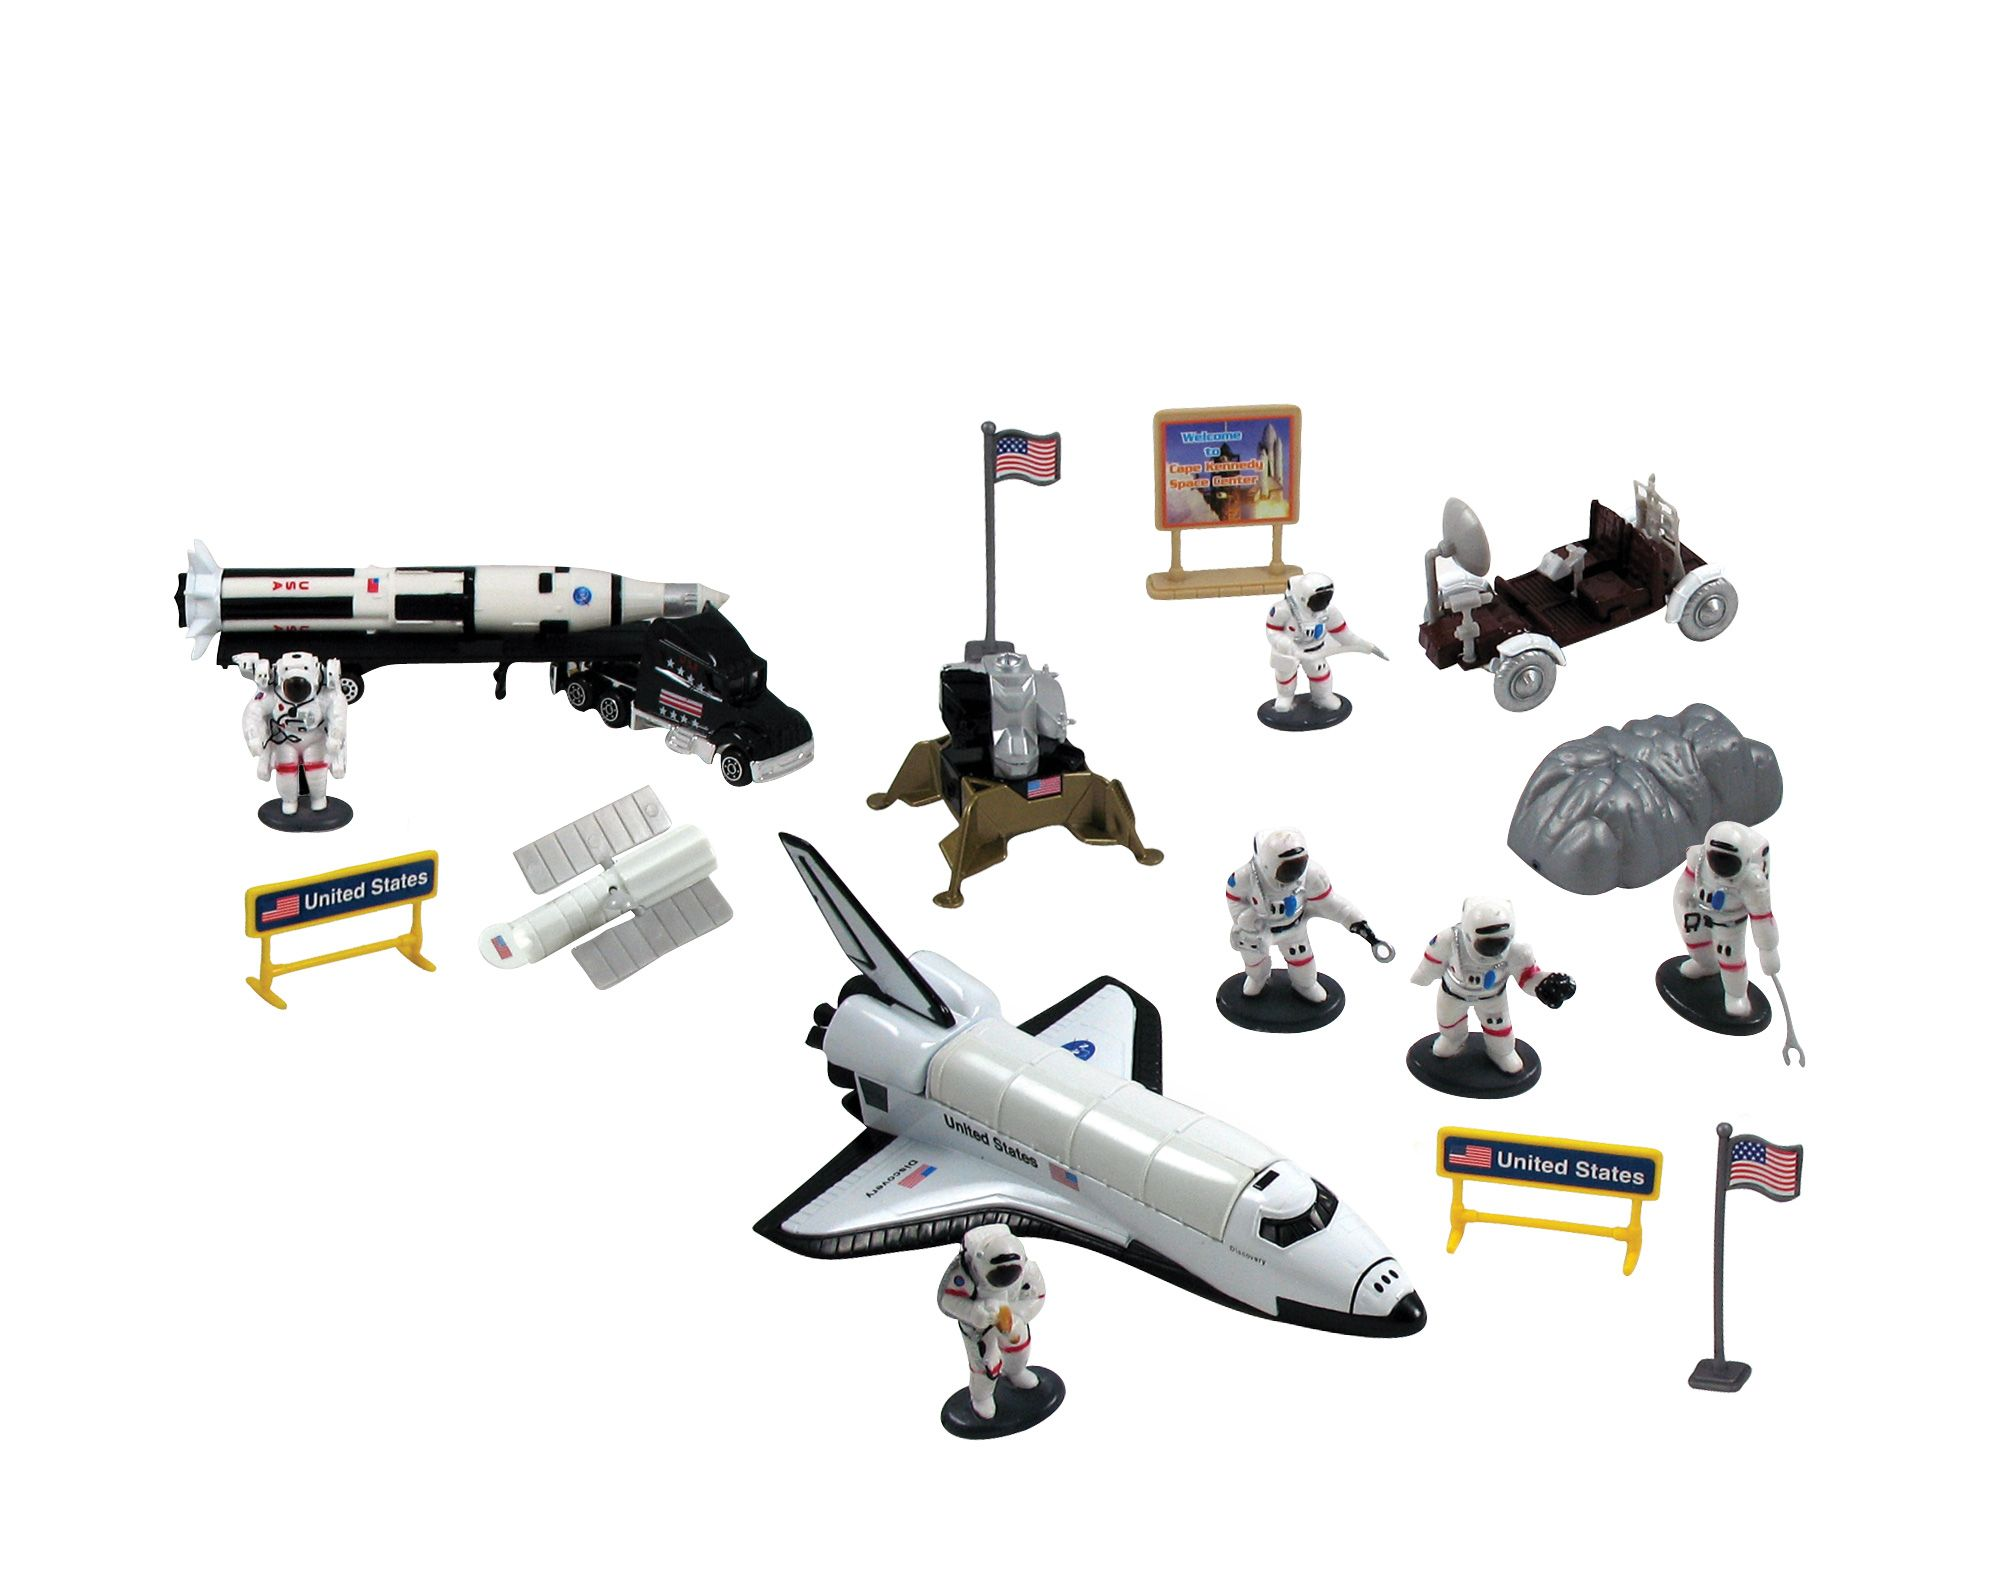 ultimate space playset $29.95 | Gifts for Astronauts ...